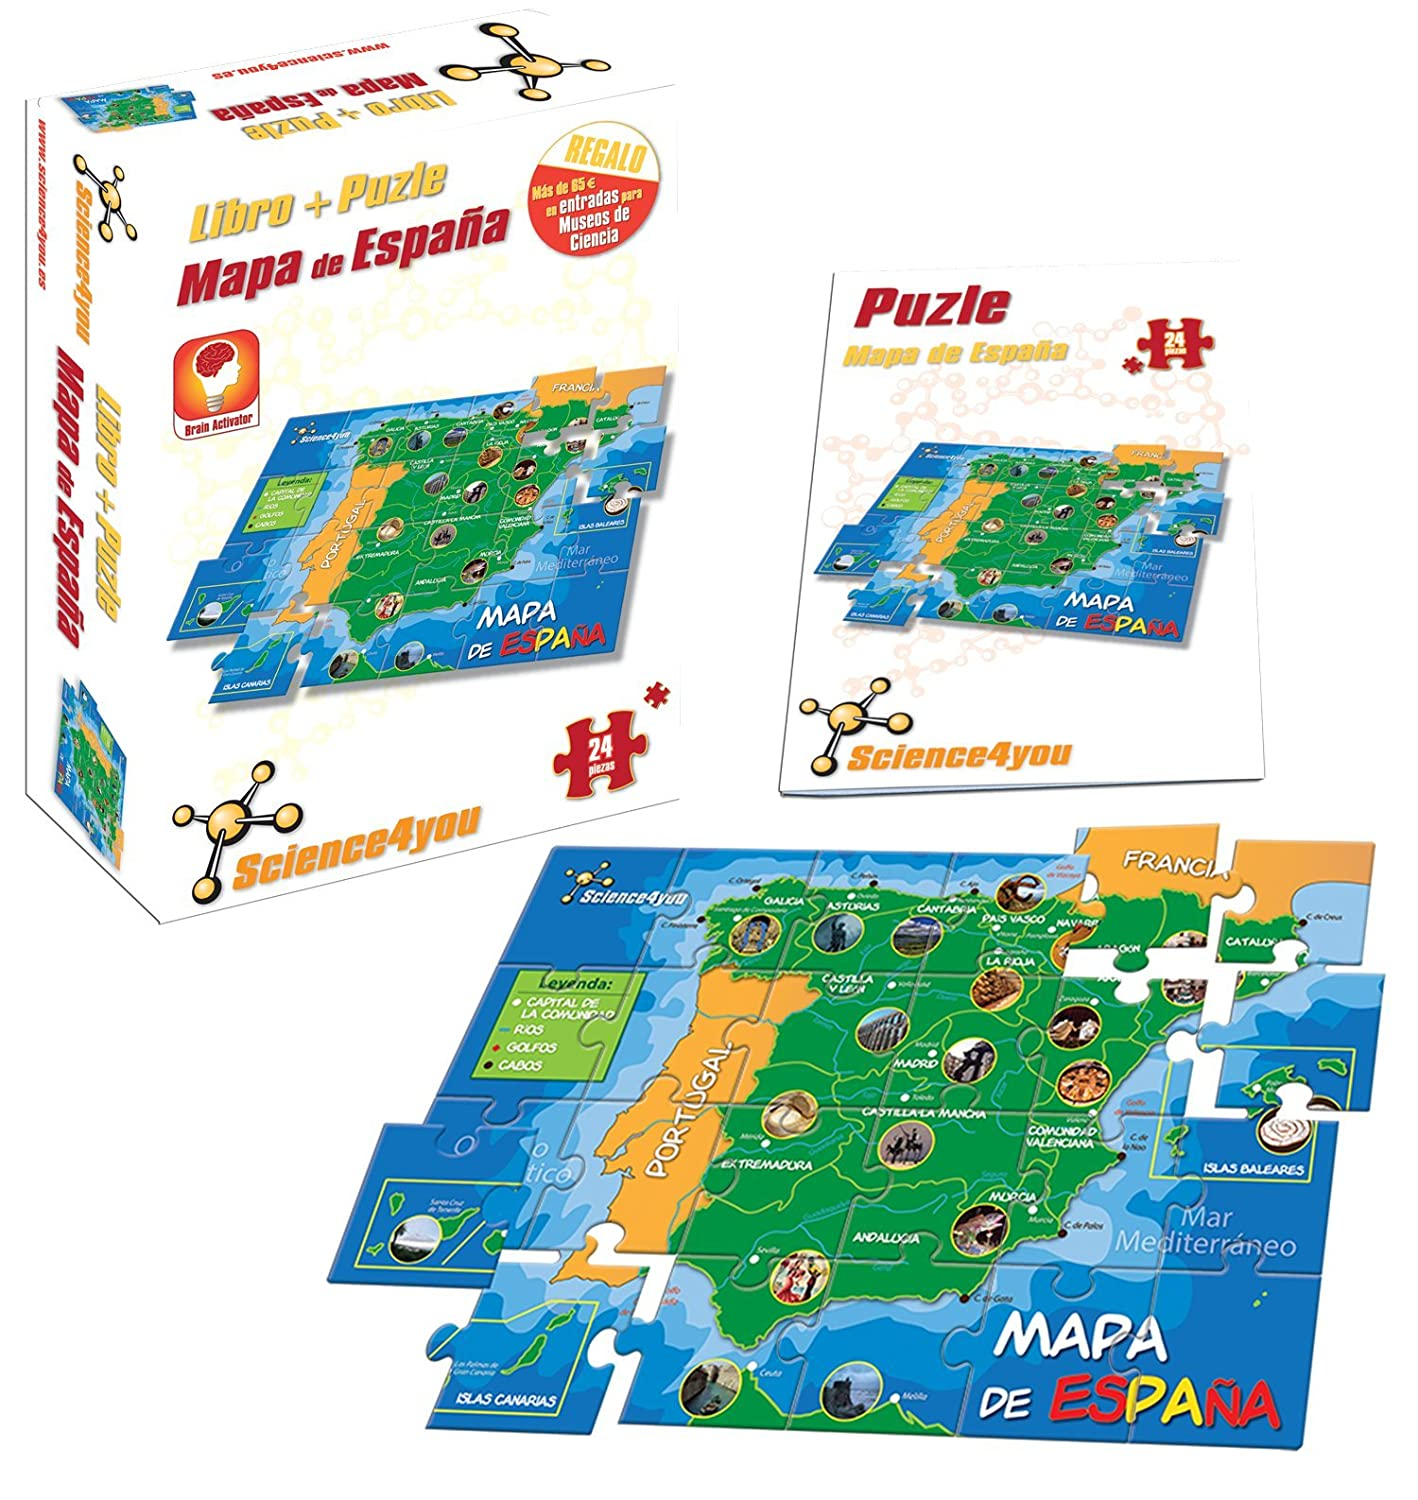 Science4you - Libro + Puzzle Mapa de España A4 - Juguete ...